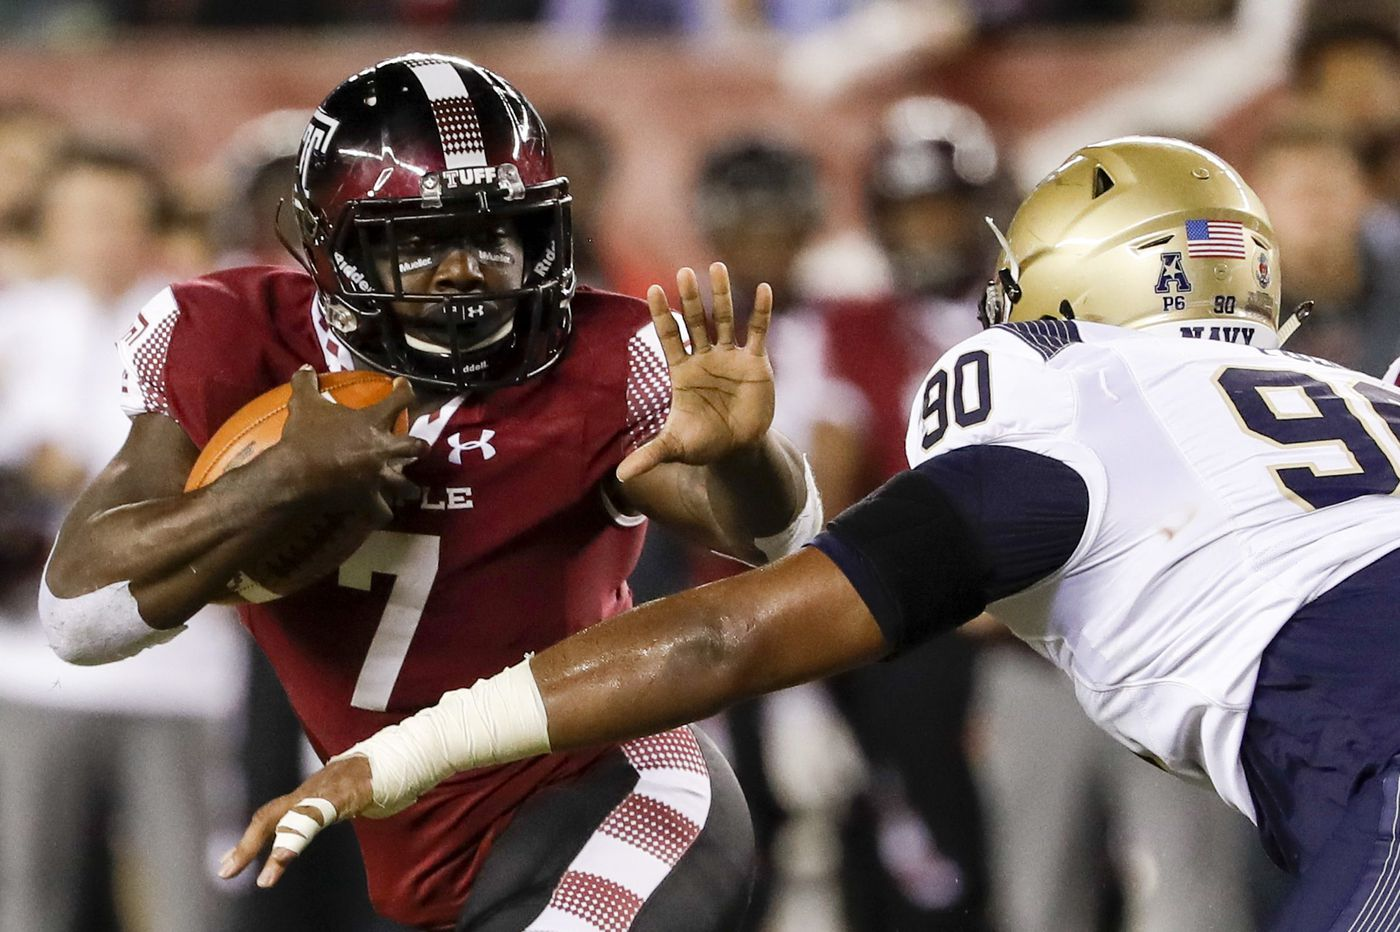 Temple football preview: Key issues, games and players